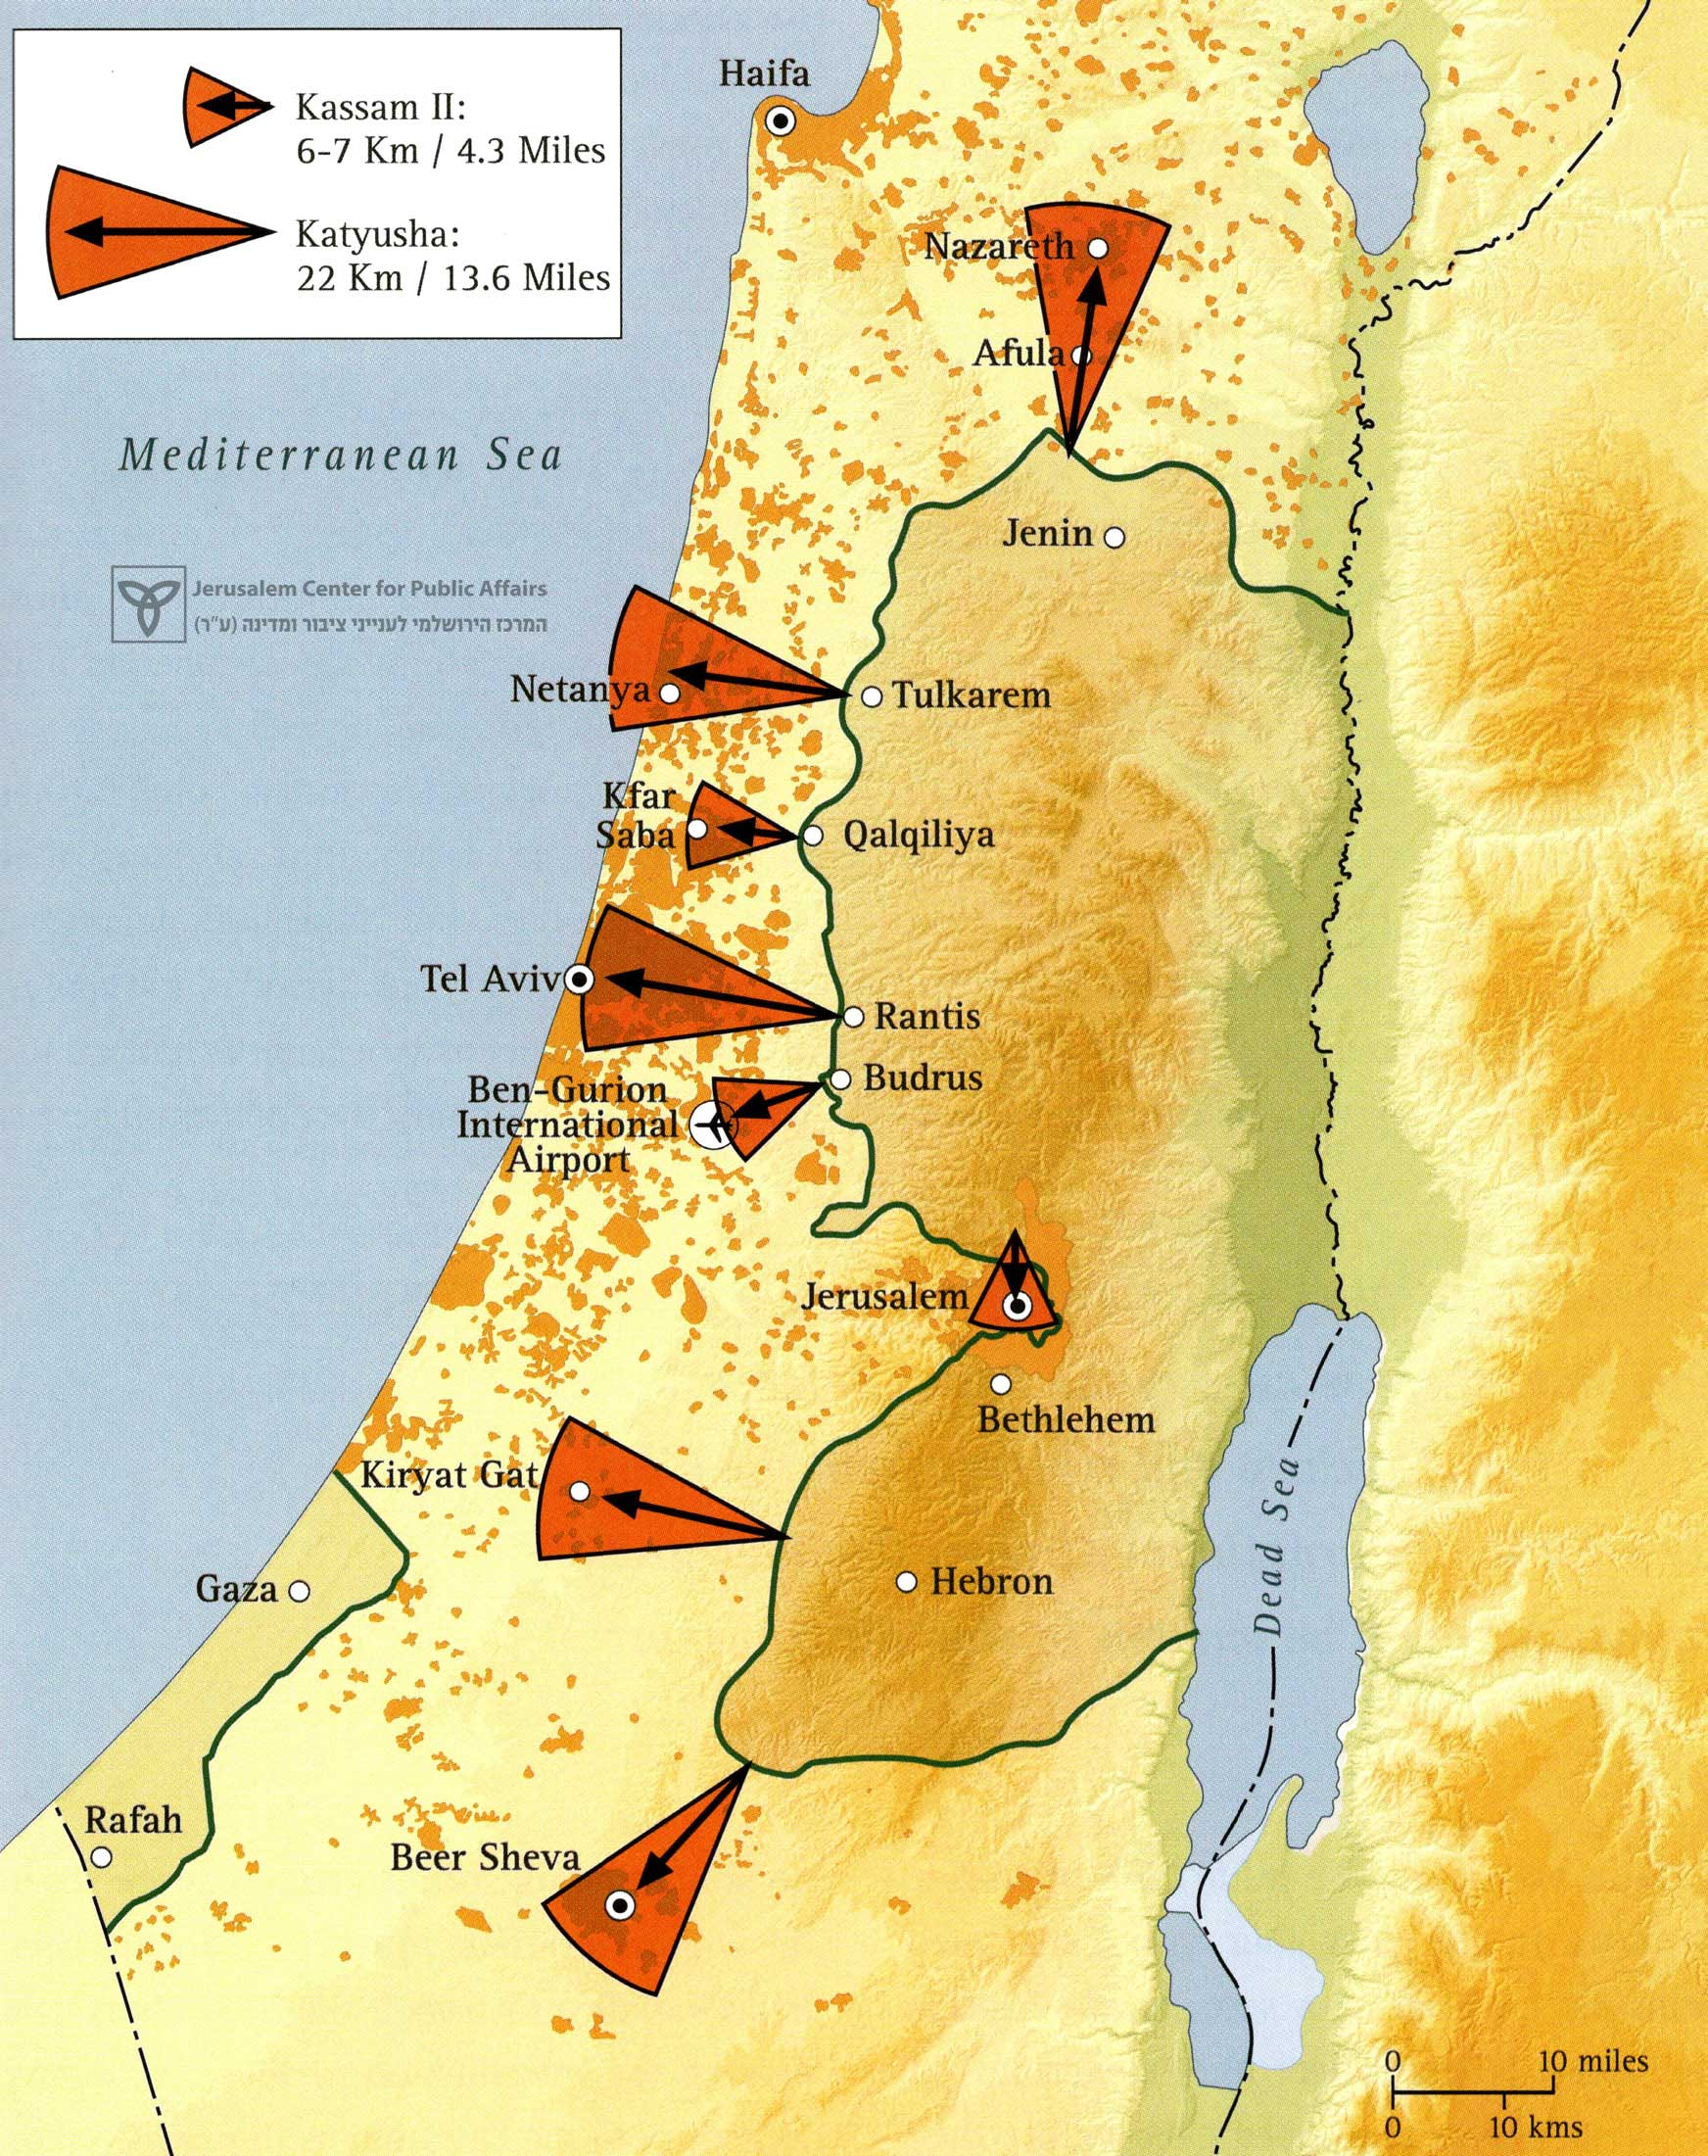 ben gurion airport map with Defensible Borders To Ensure Israels Future on 4313801825 together with 175115010 furthermore 8084481771 moreover 175113184 moreover Failure To Coordinate.